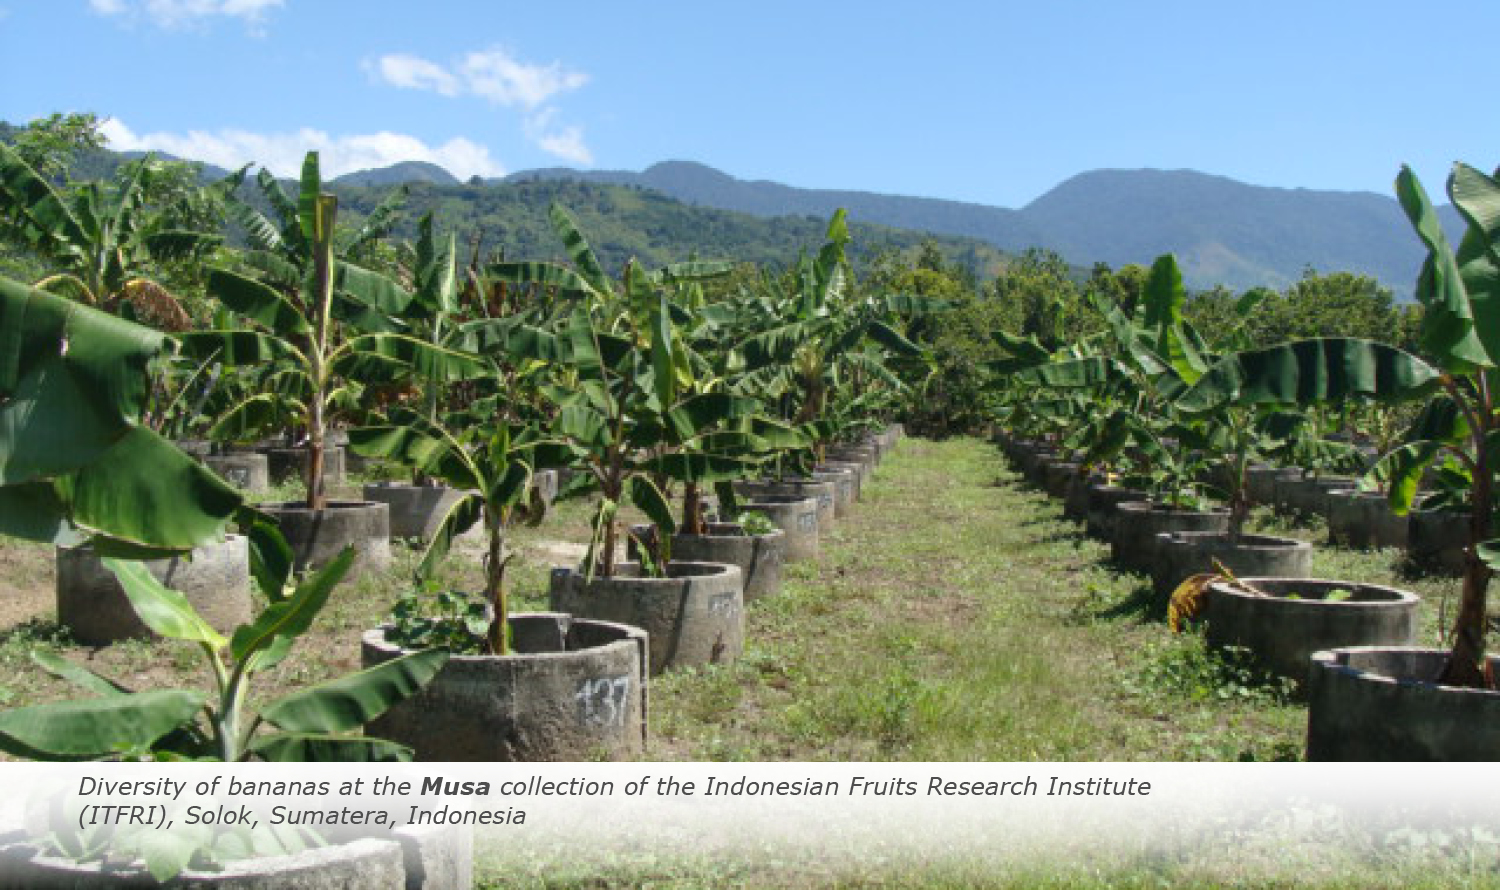 Info & Facts: Diversity of bananas at the Musa collection of the Indonesian Fruits Research Institute (ITFRI), Solok, Sumatera, Indonesia